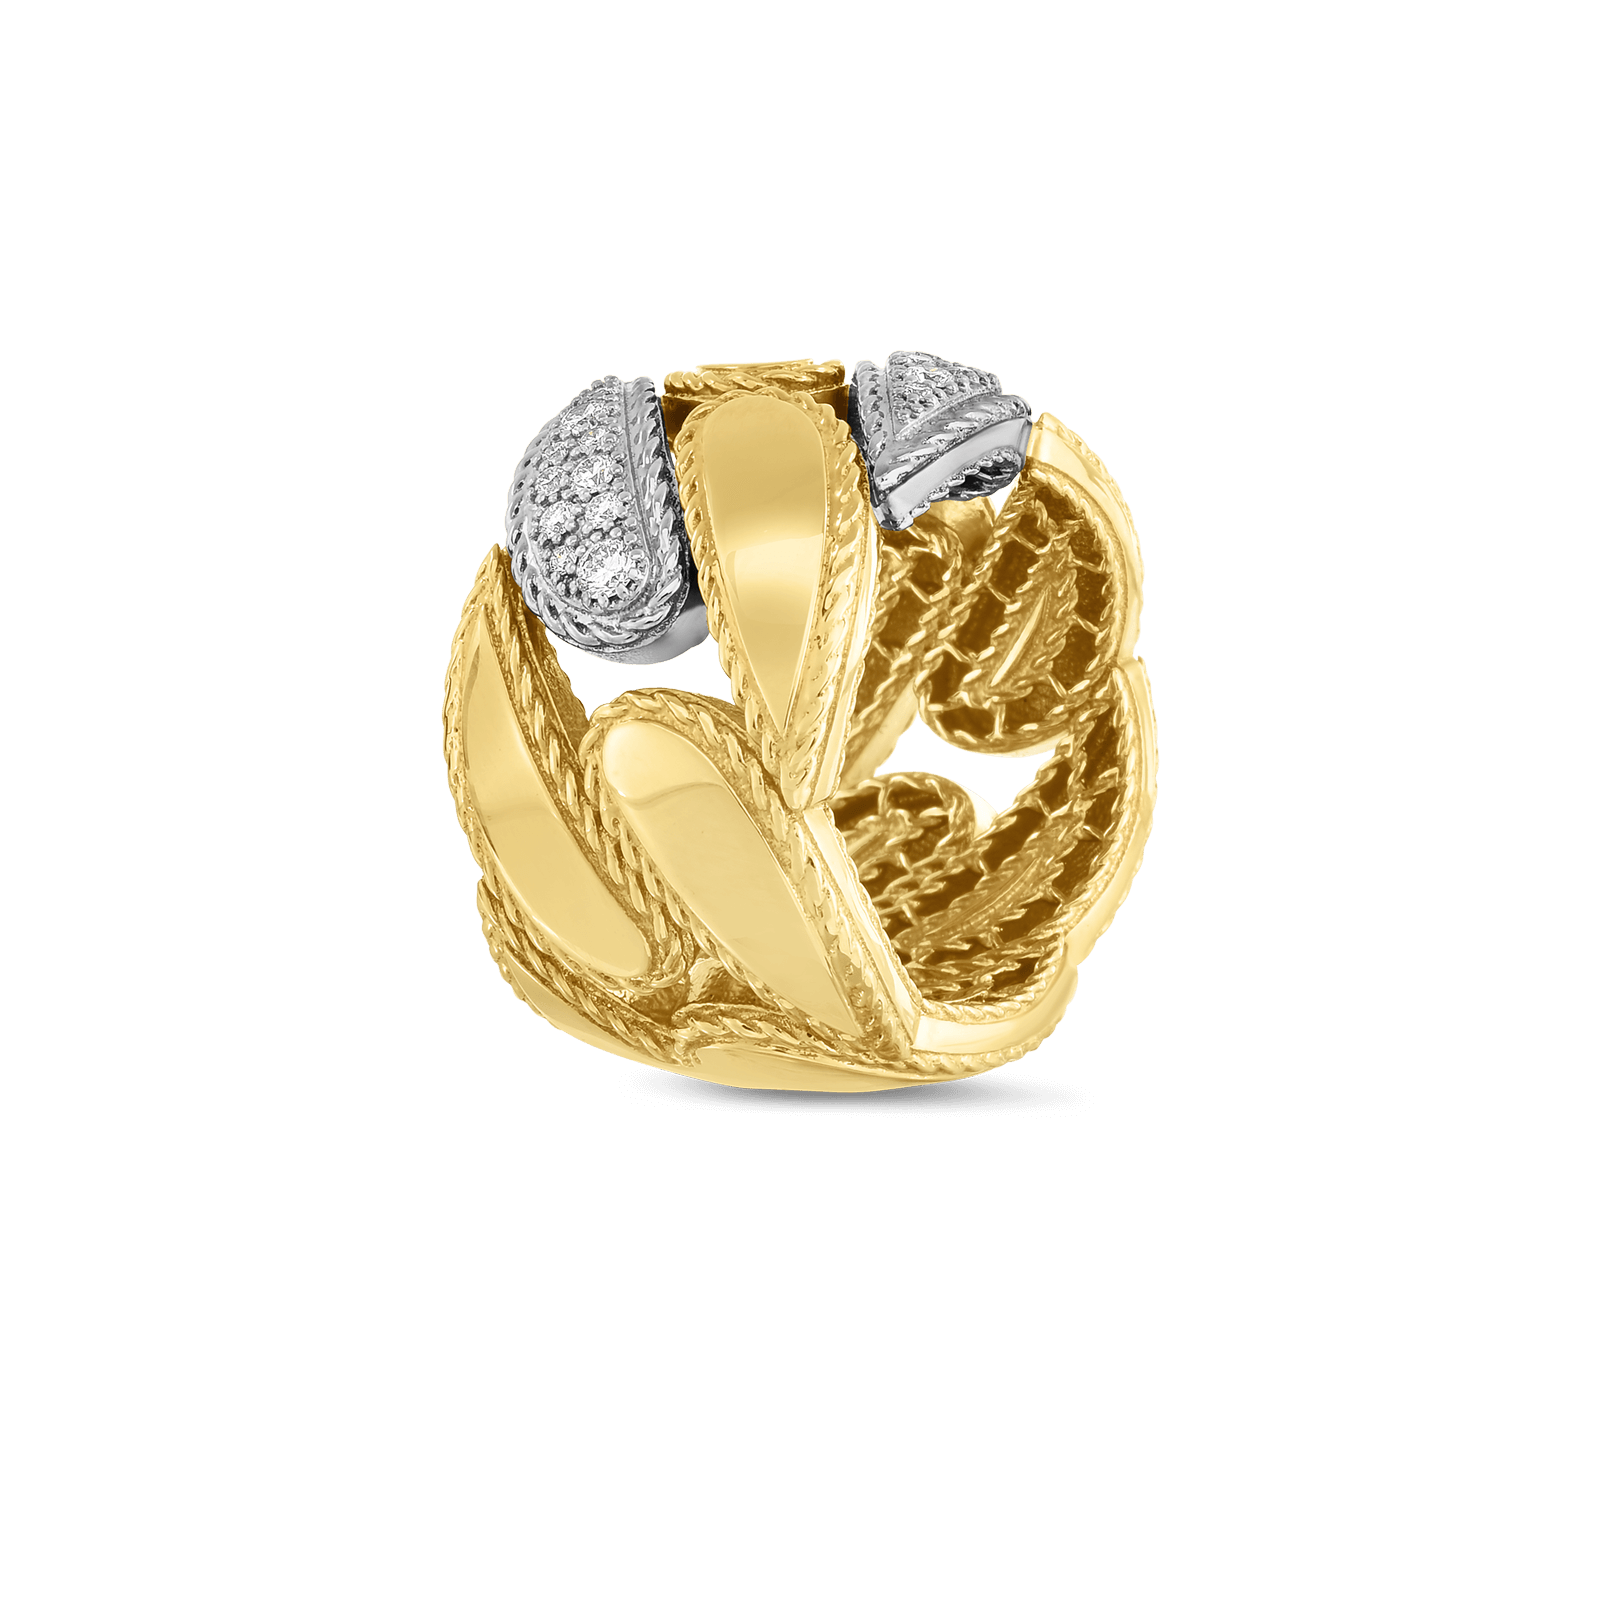 Roberto-Coin-18k-yellow-gold-18k-white-gold-Gourmentte Link Ring with Diamonds-8882219AJ65X0alt